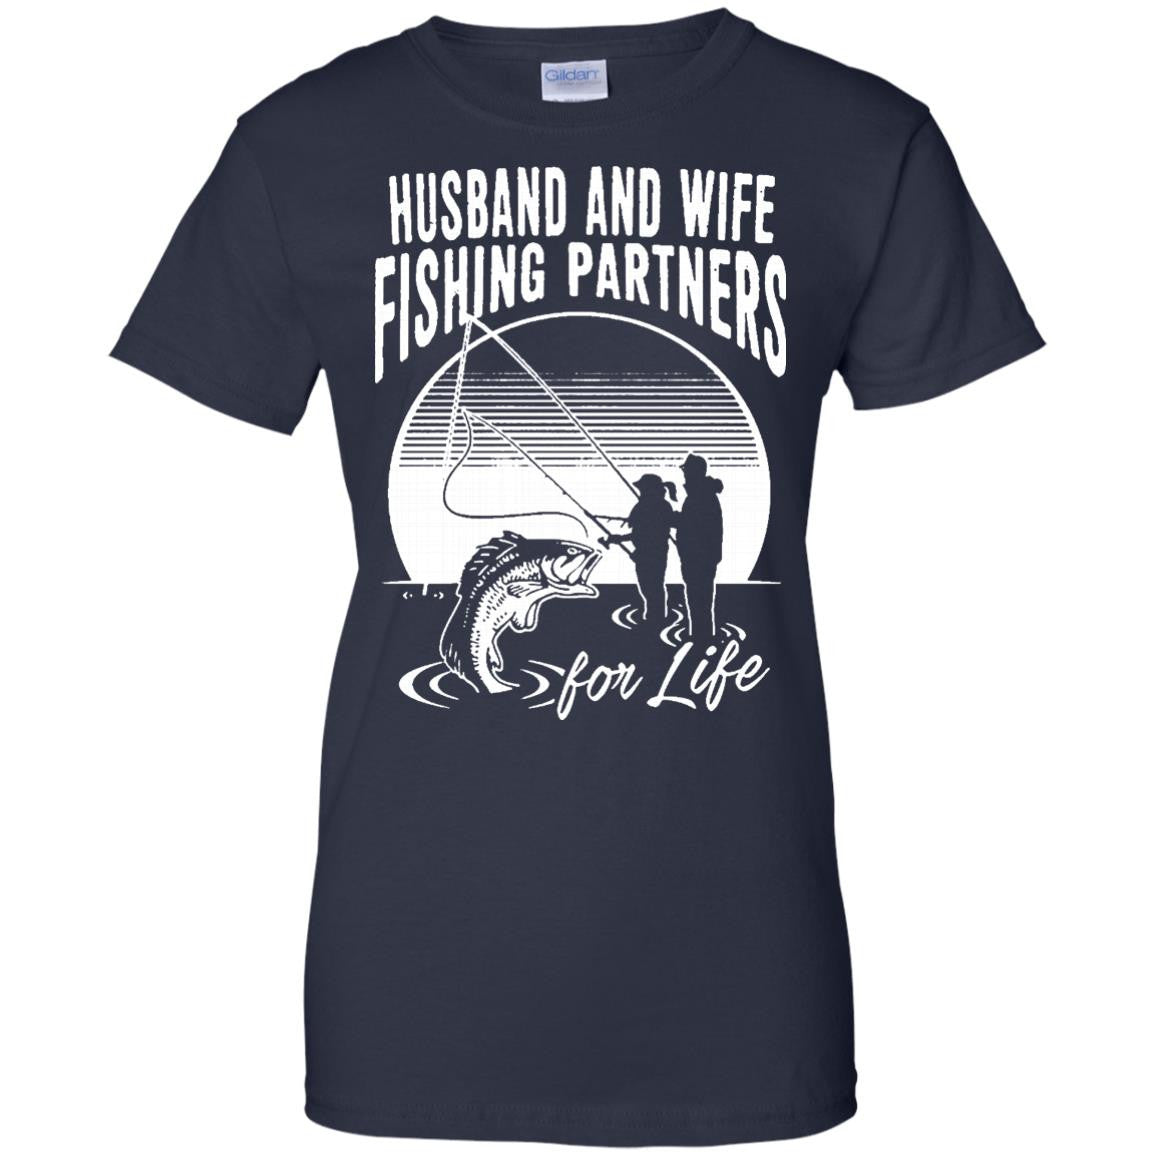 Family t shirts husband and wife fishing partners for life Fishing t shirts